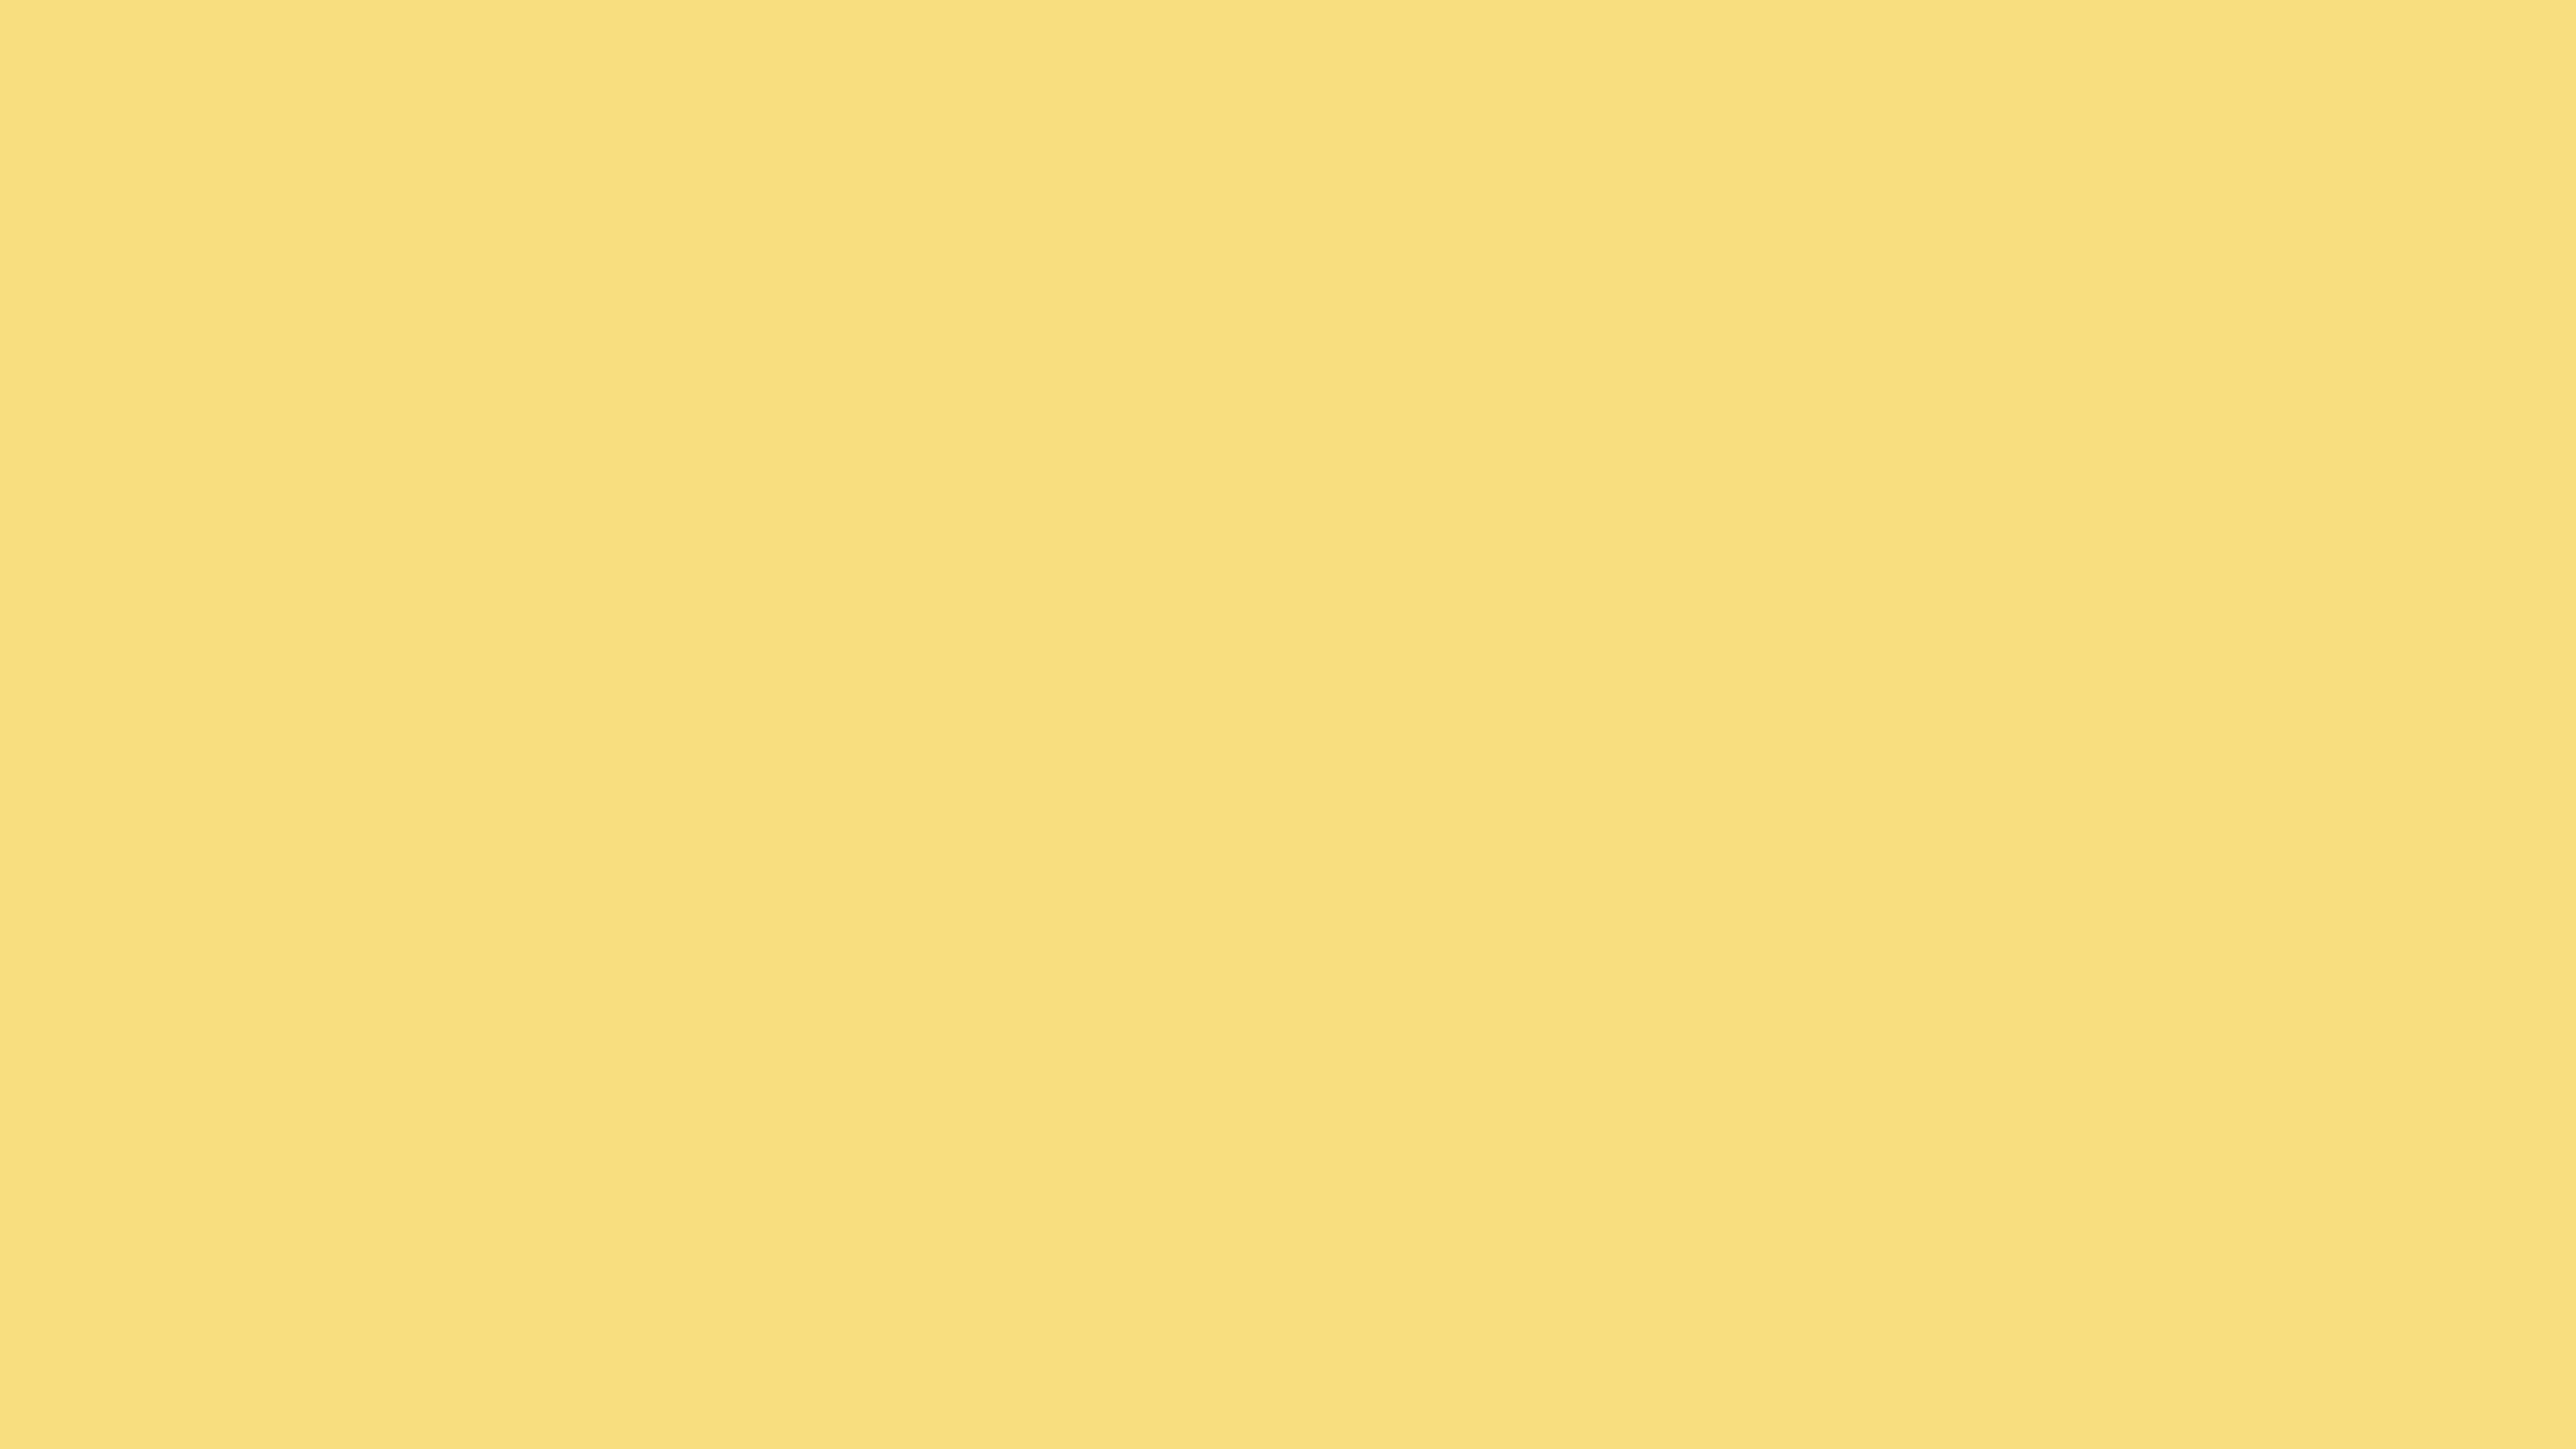 5120x2880 Mellow Yellow Solid Color Background